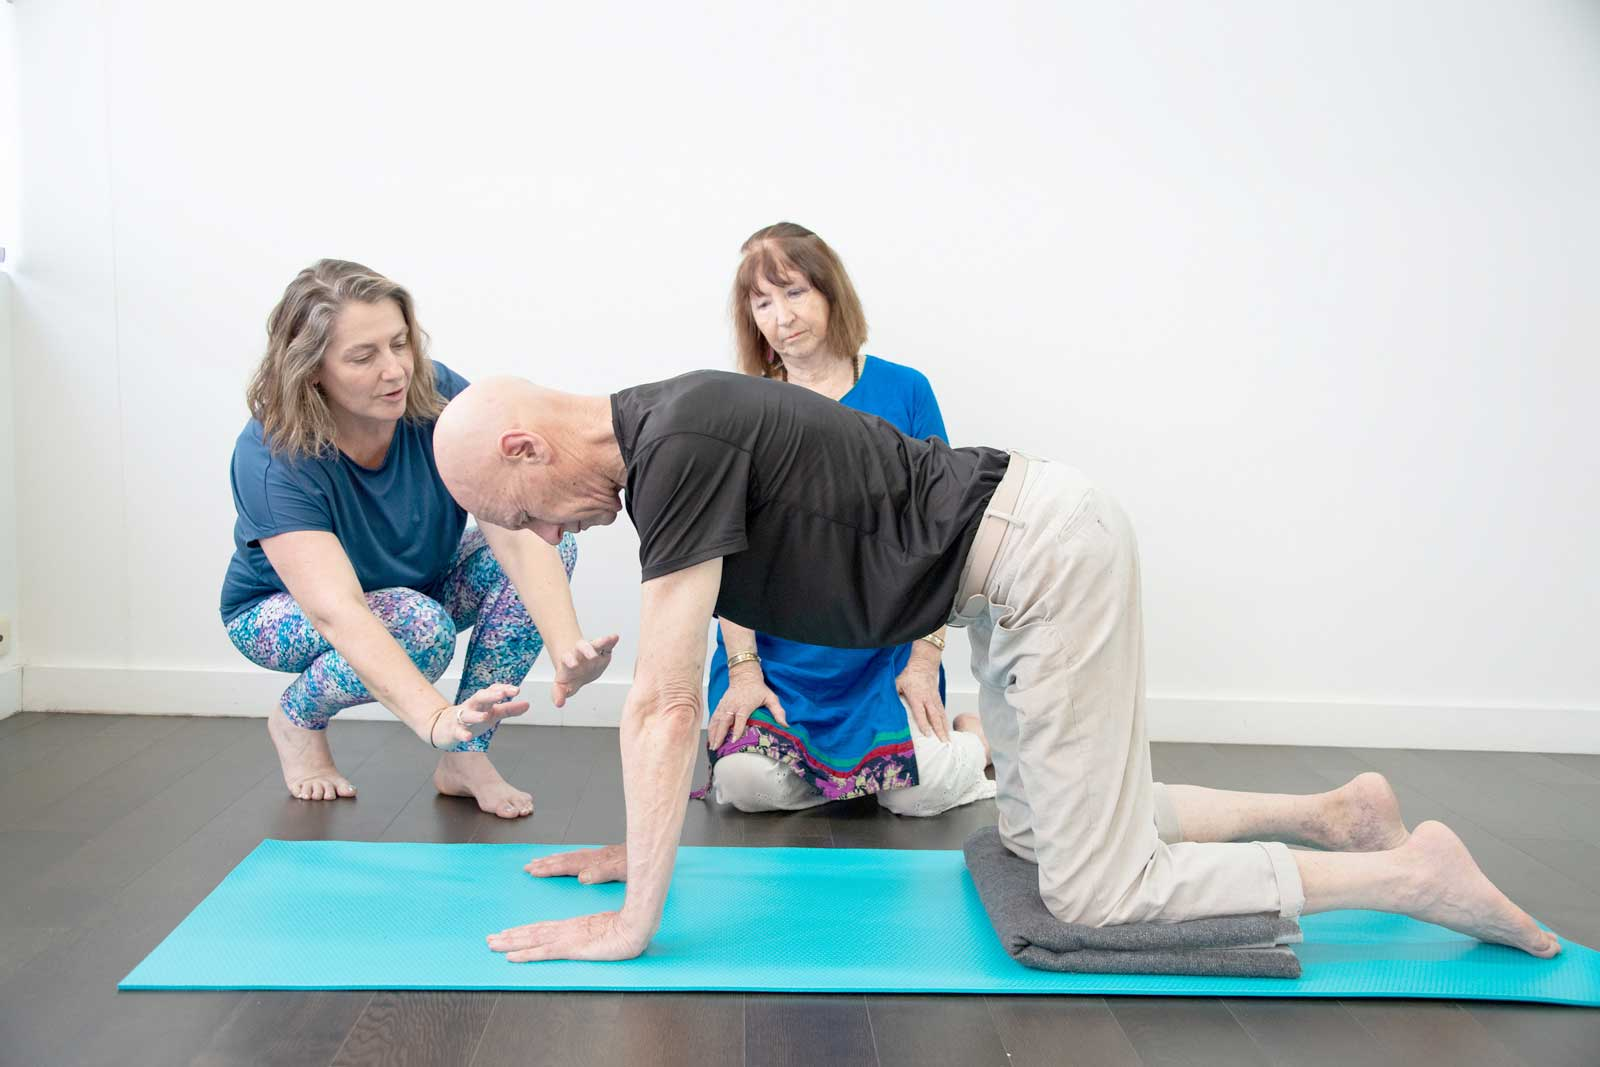 Communication & Compliance in Yoga Therapy